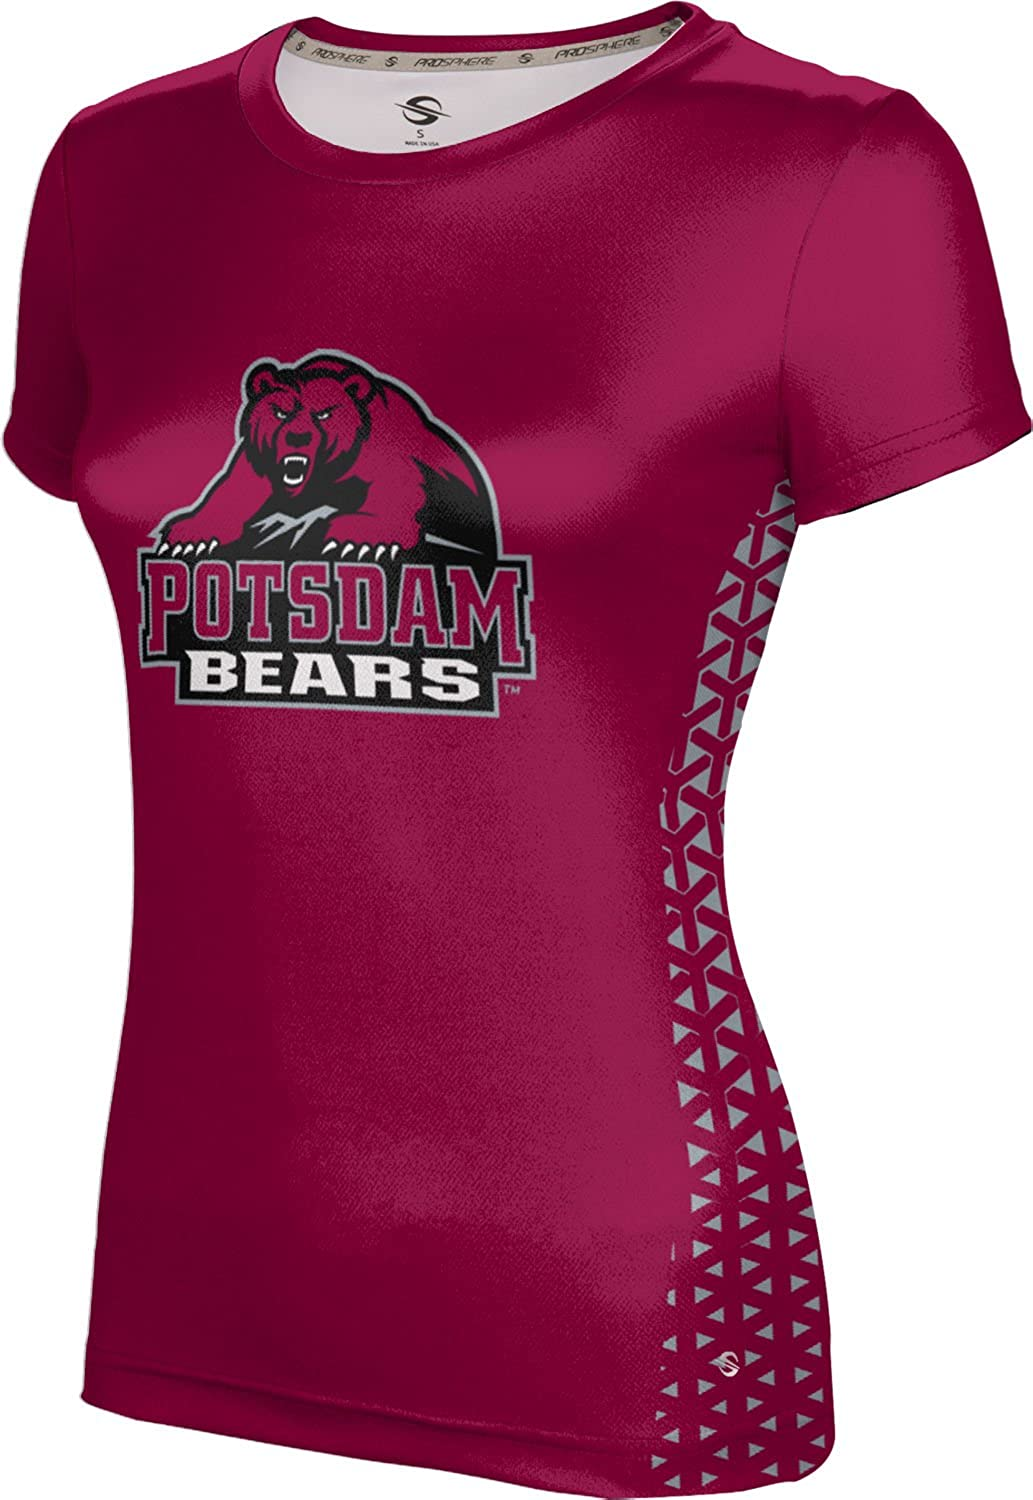 State University of New York at Potsdam Girls' Performance T-Shirt (Geometric) F9A85 Red and Gray